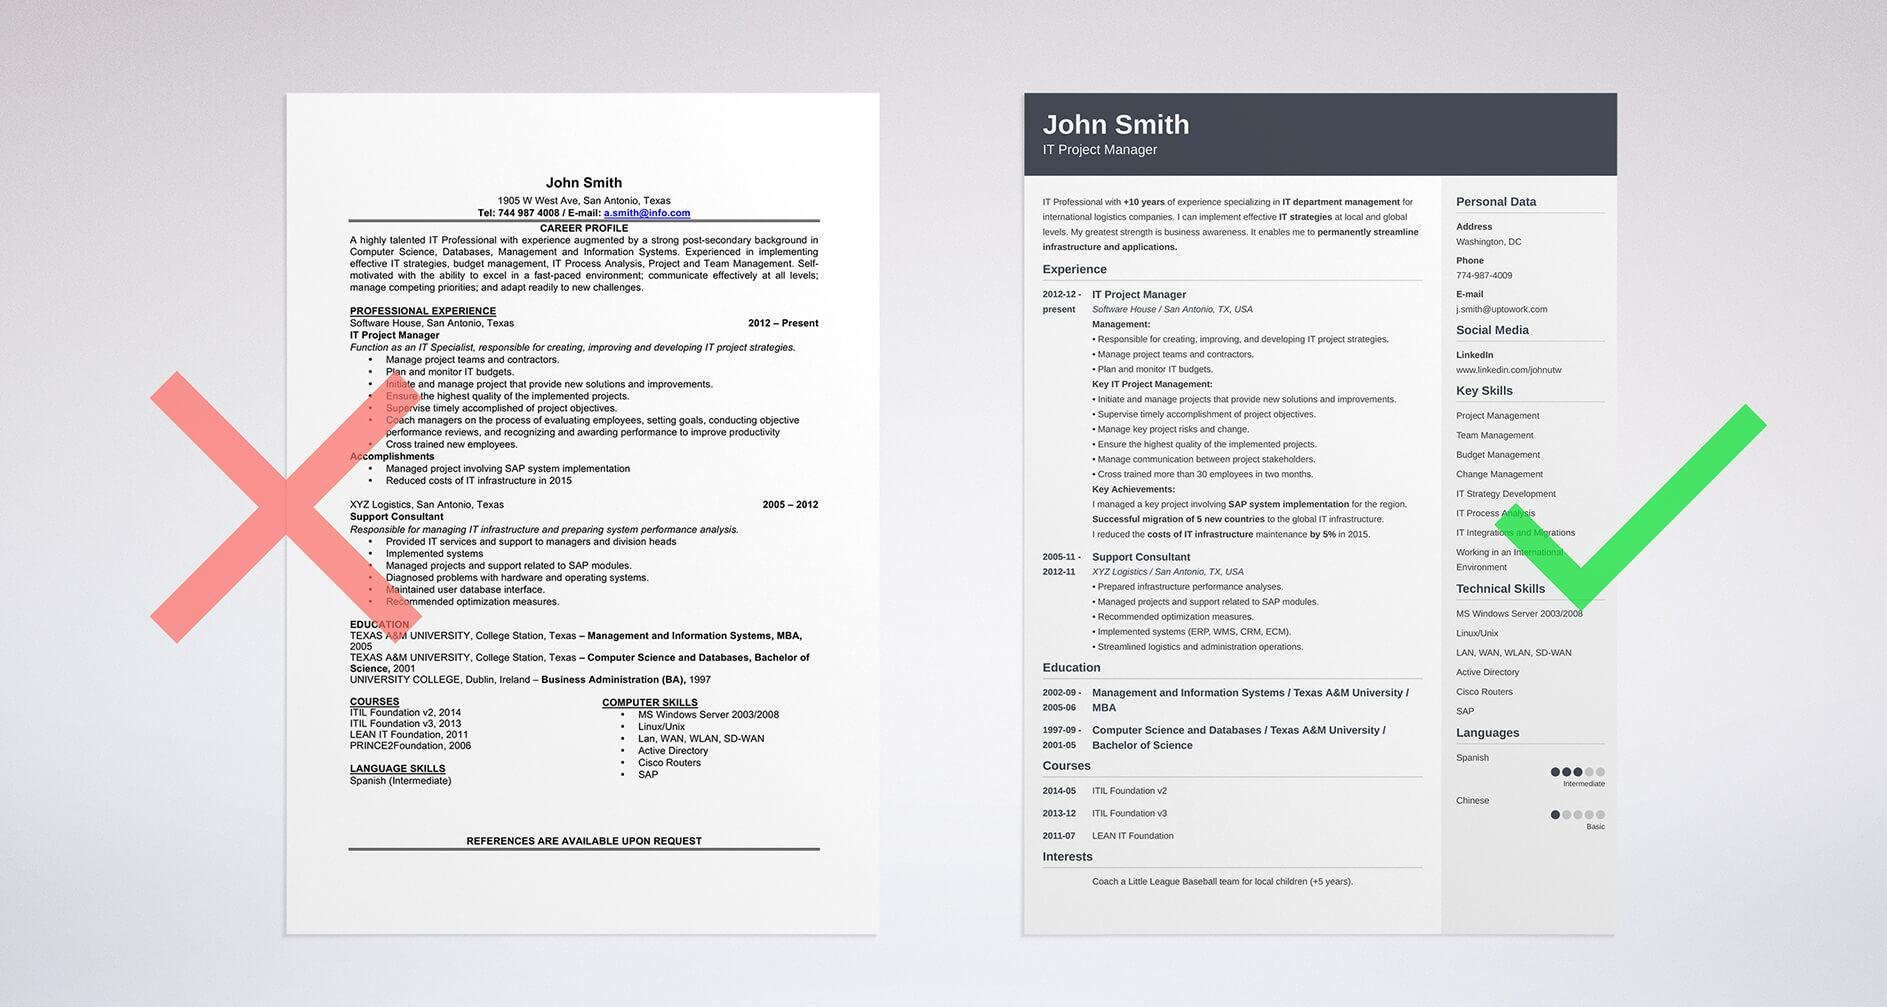 emailing resume job application email samples find without to get more jobs train new Resume Find A Job Without A Resume